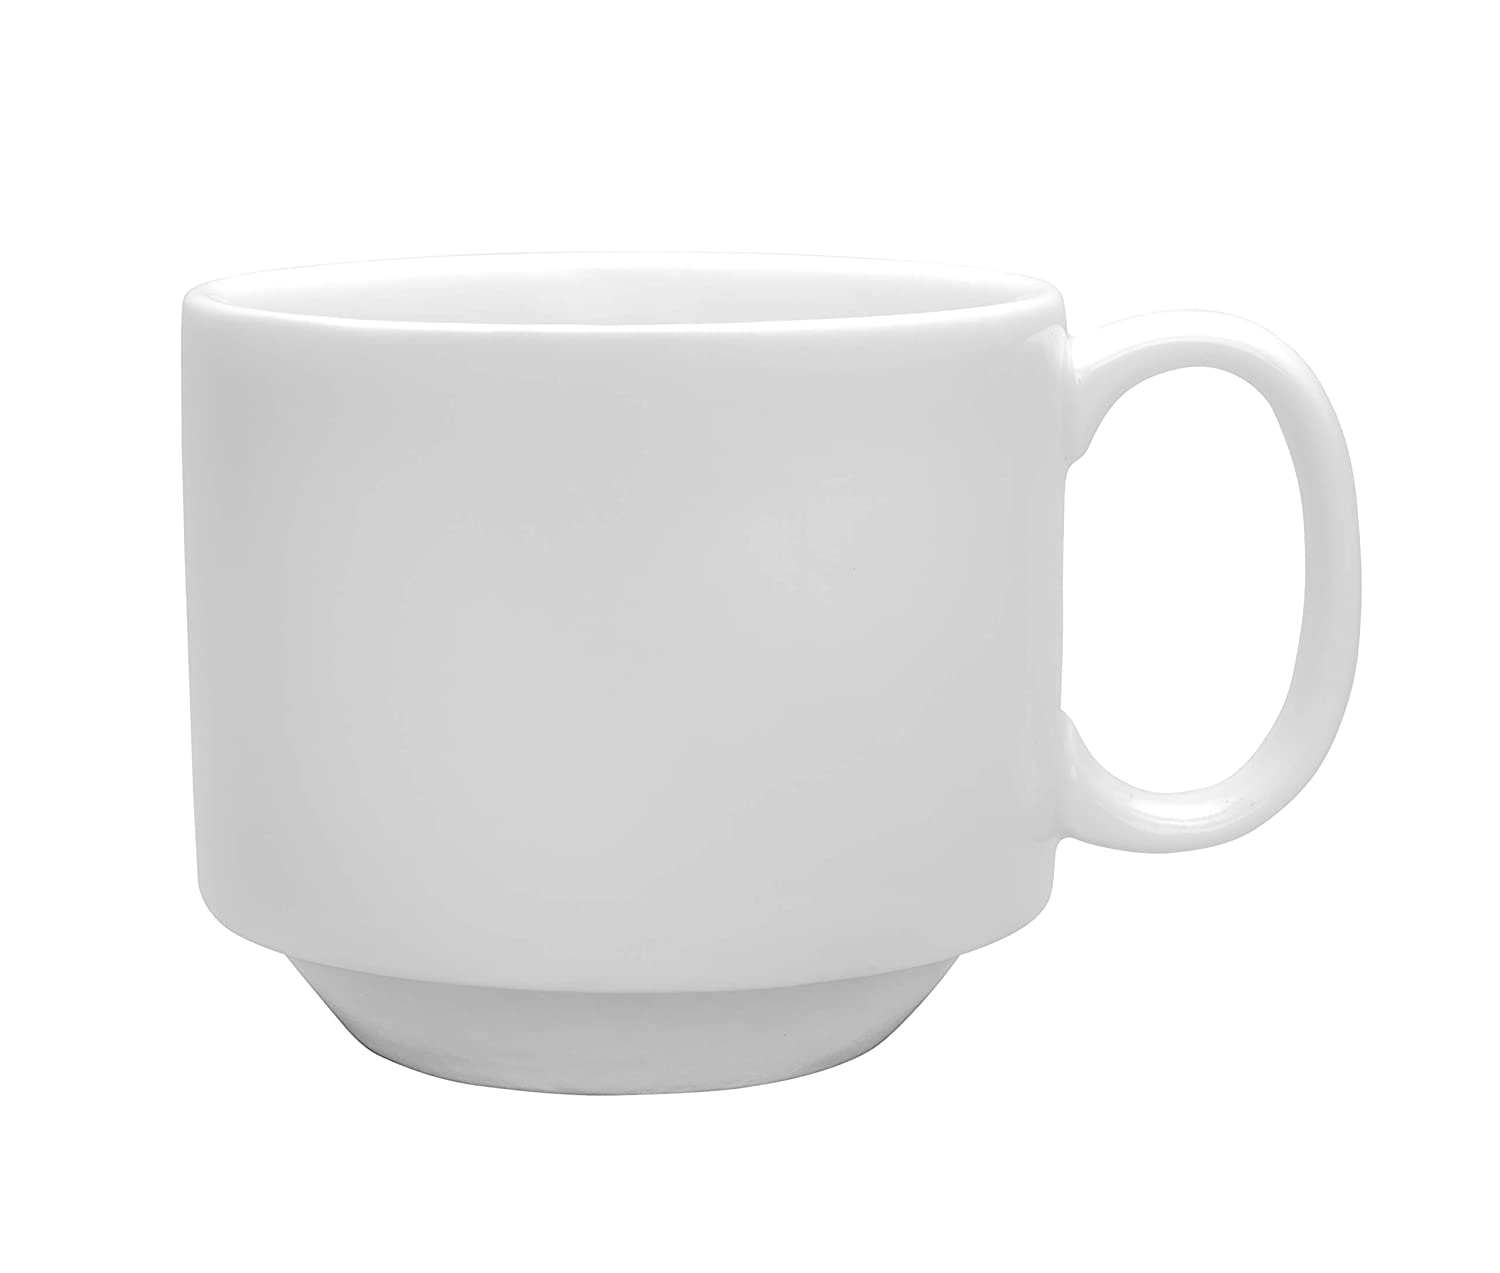 Chef Expressions 9-ounce Stackable Cup, Restaurant Quality, Vitrified Bright White Porcelain, C-Handle (Case of 12)